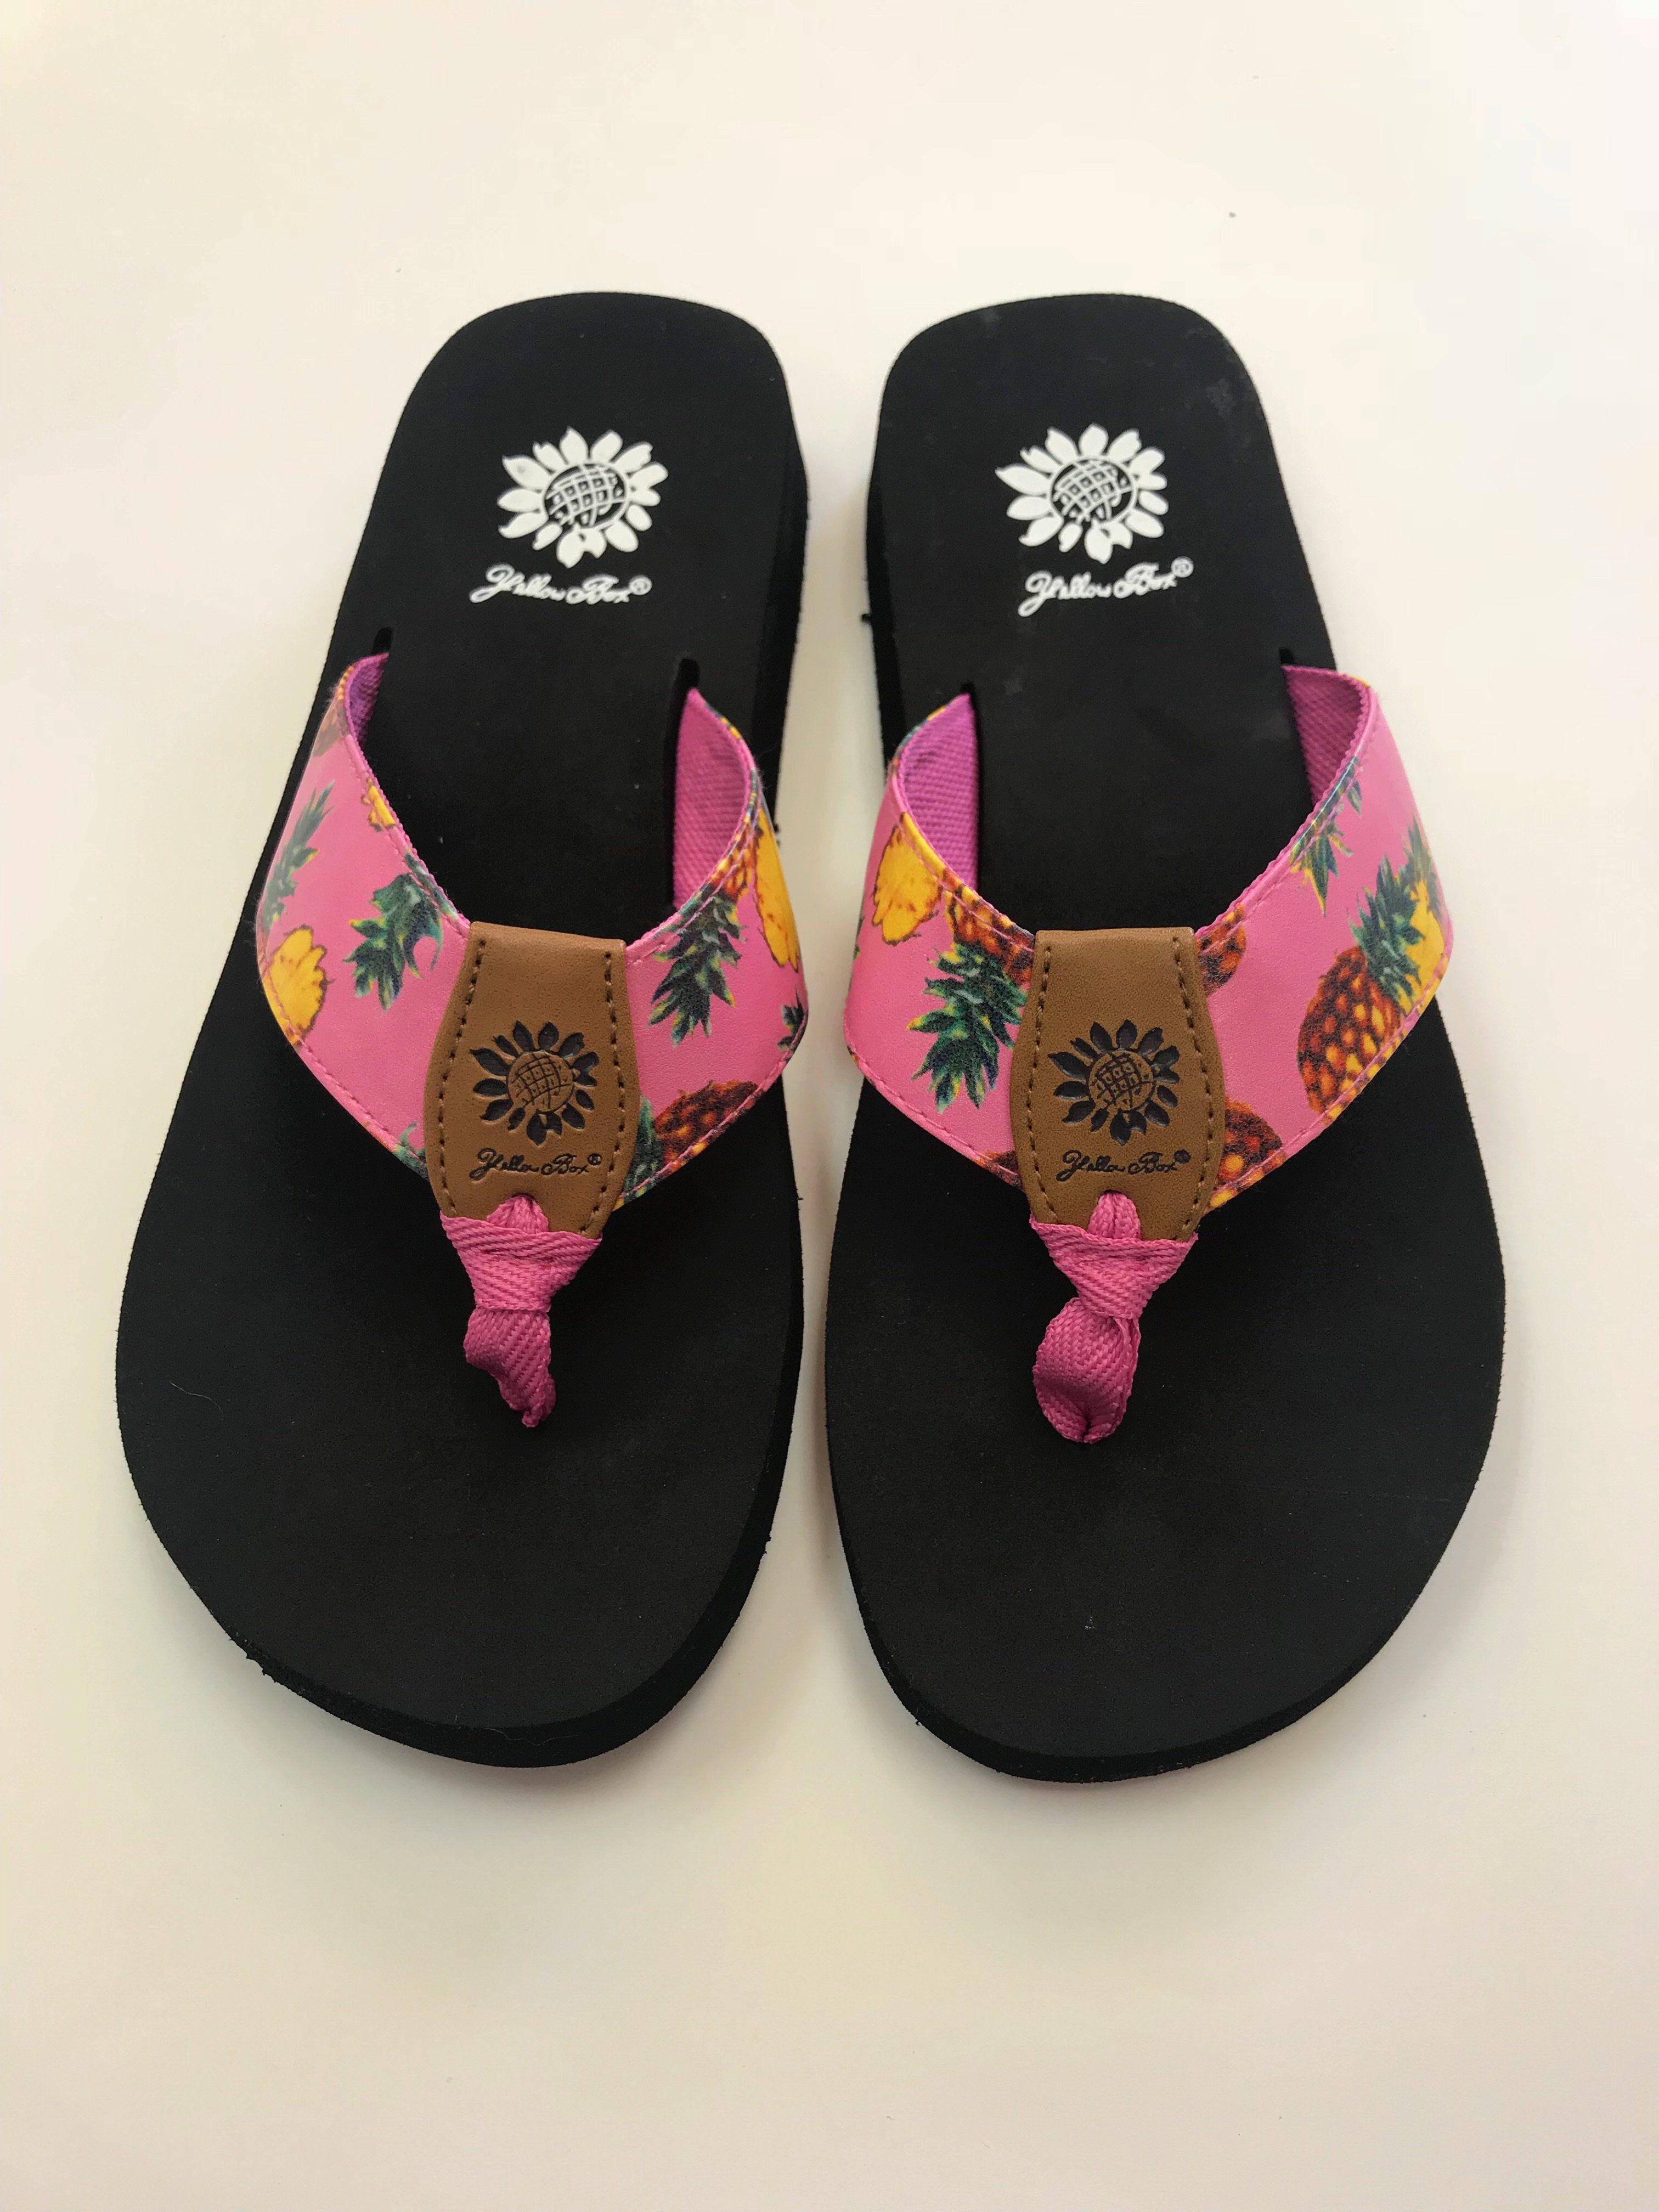 cb40e9b07 runs true to size - cushioned soul Don t forget to buy your mini me a pair!  We have these adorable sandals in kids sizes too!!